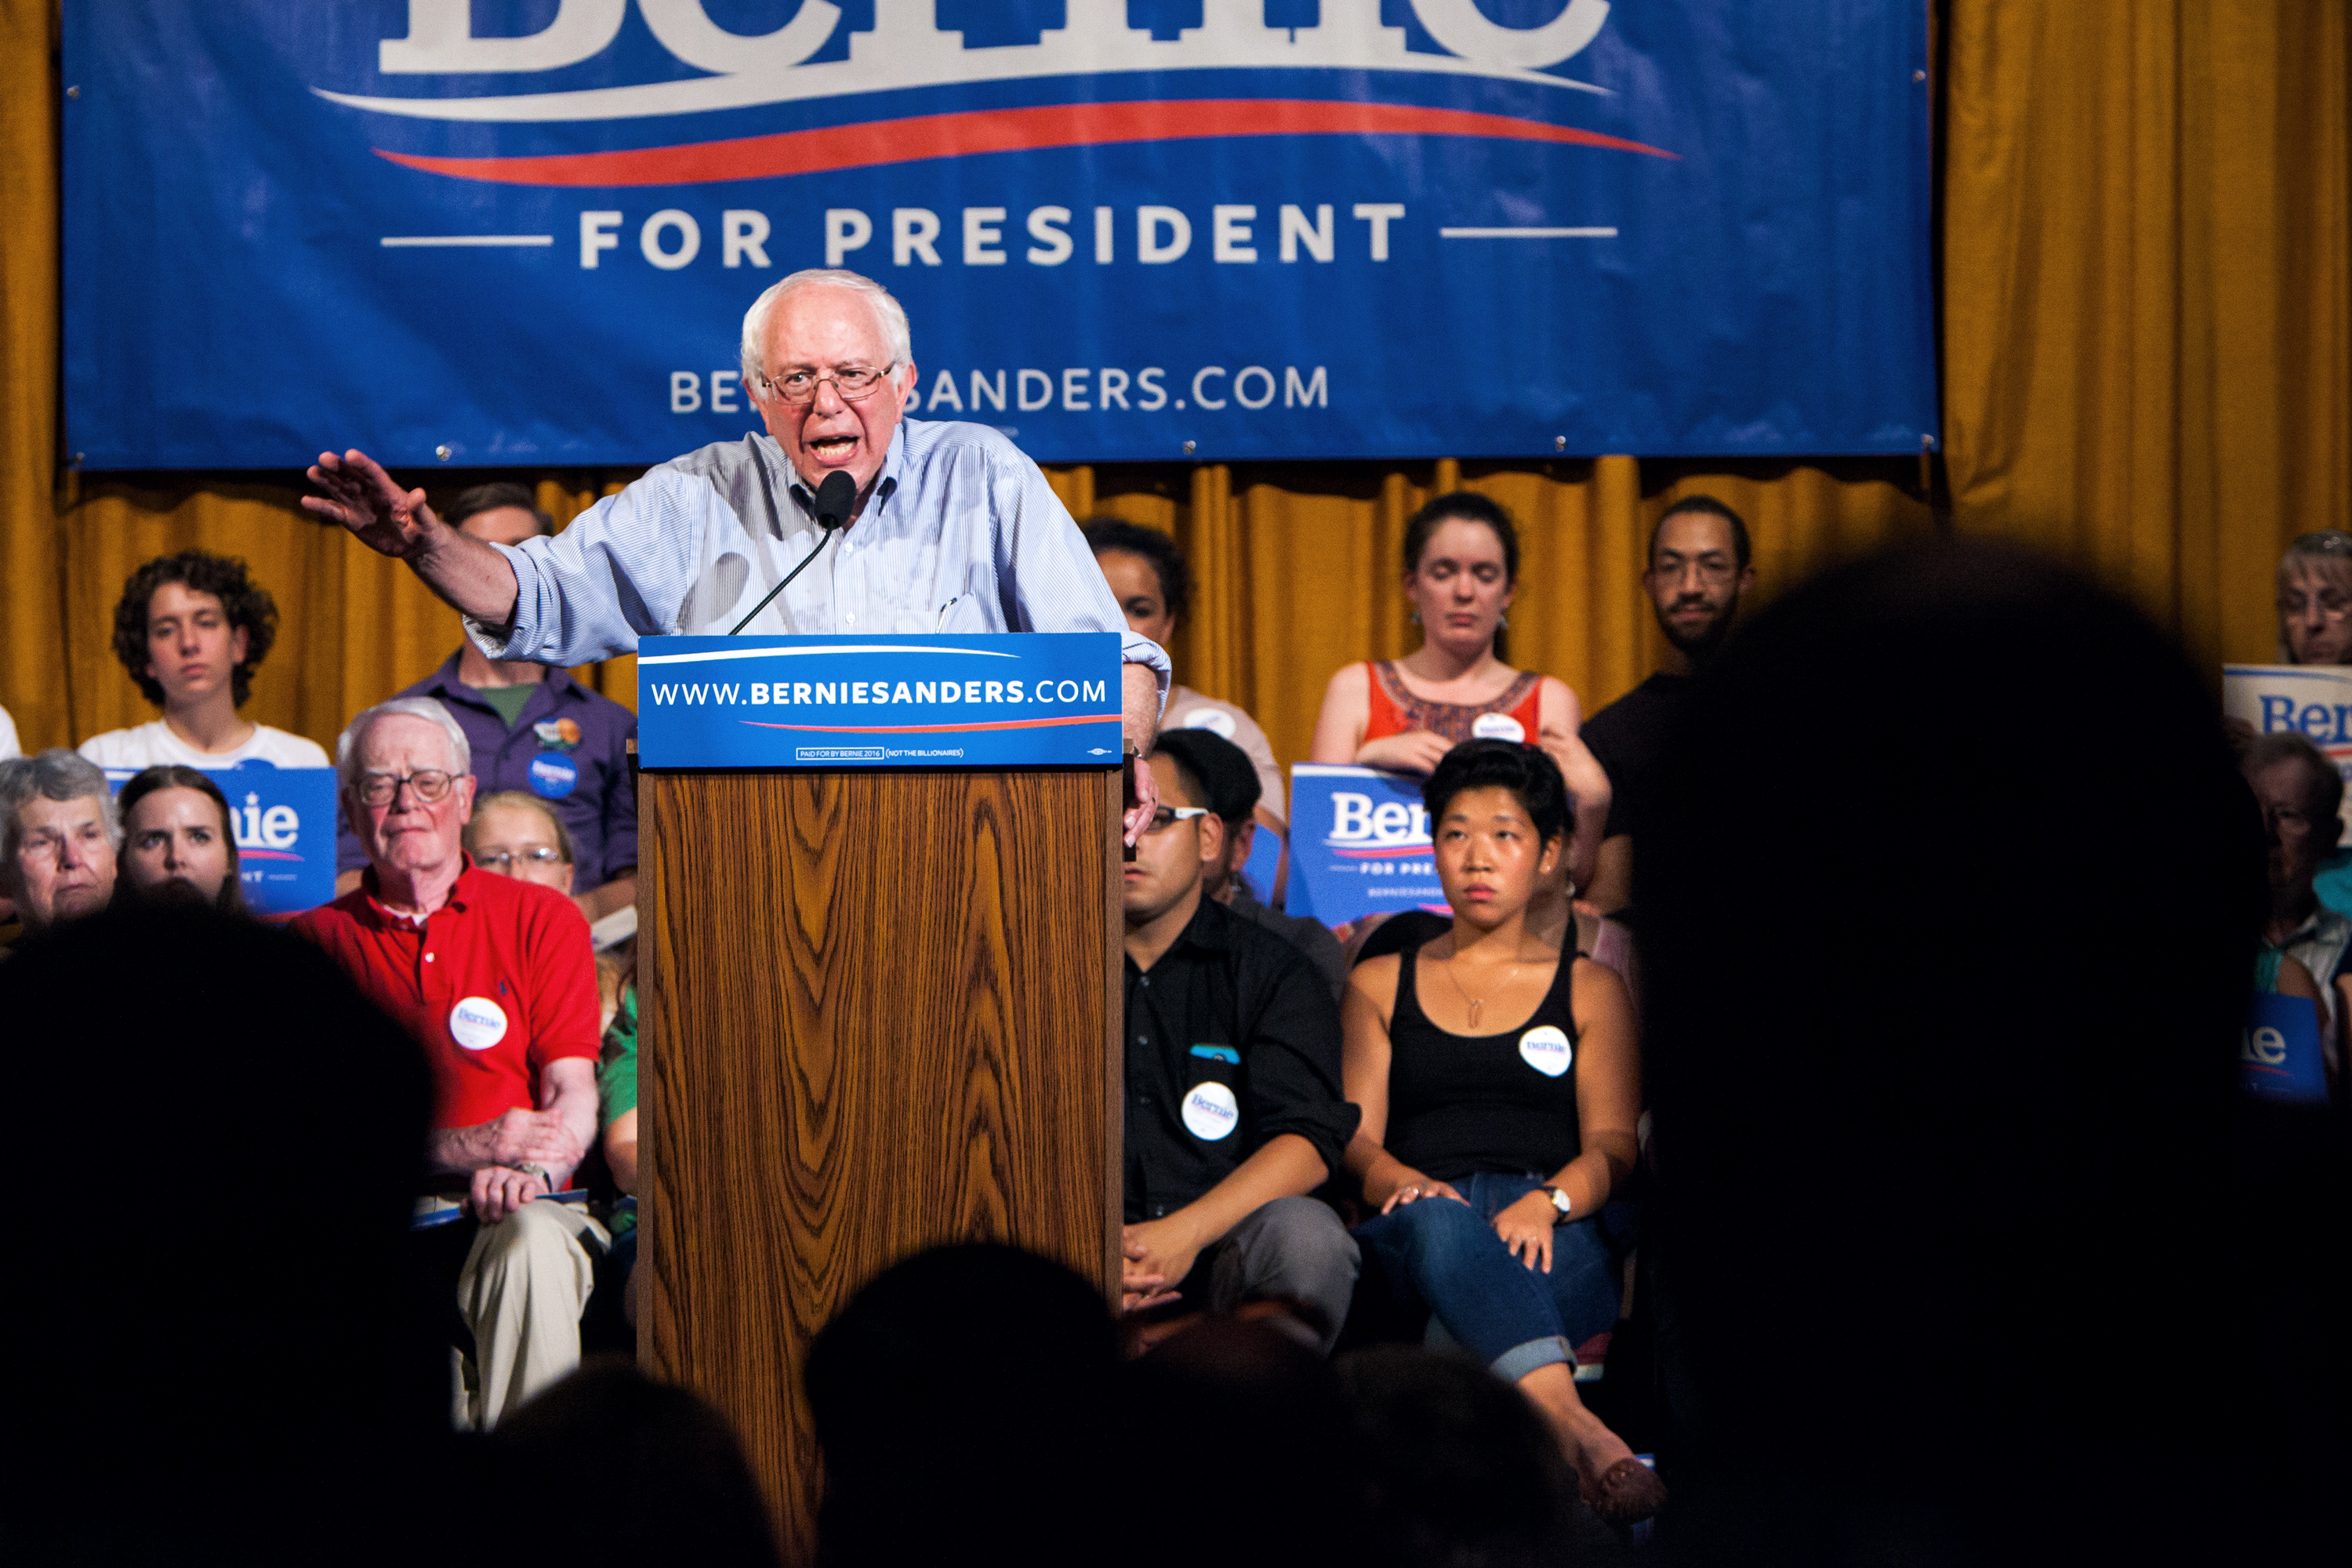 Presidential candidate Vermont Senator Bernie Sanders meets with voters at a Town Hall meeting in Littleton, NH on August 24th, 2015. (Photo by Porter Gifford/Corbis via Getty Images)